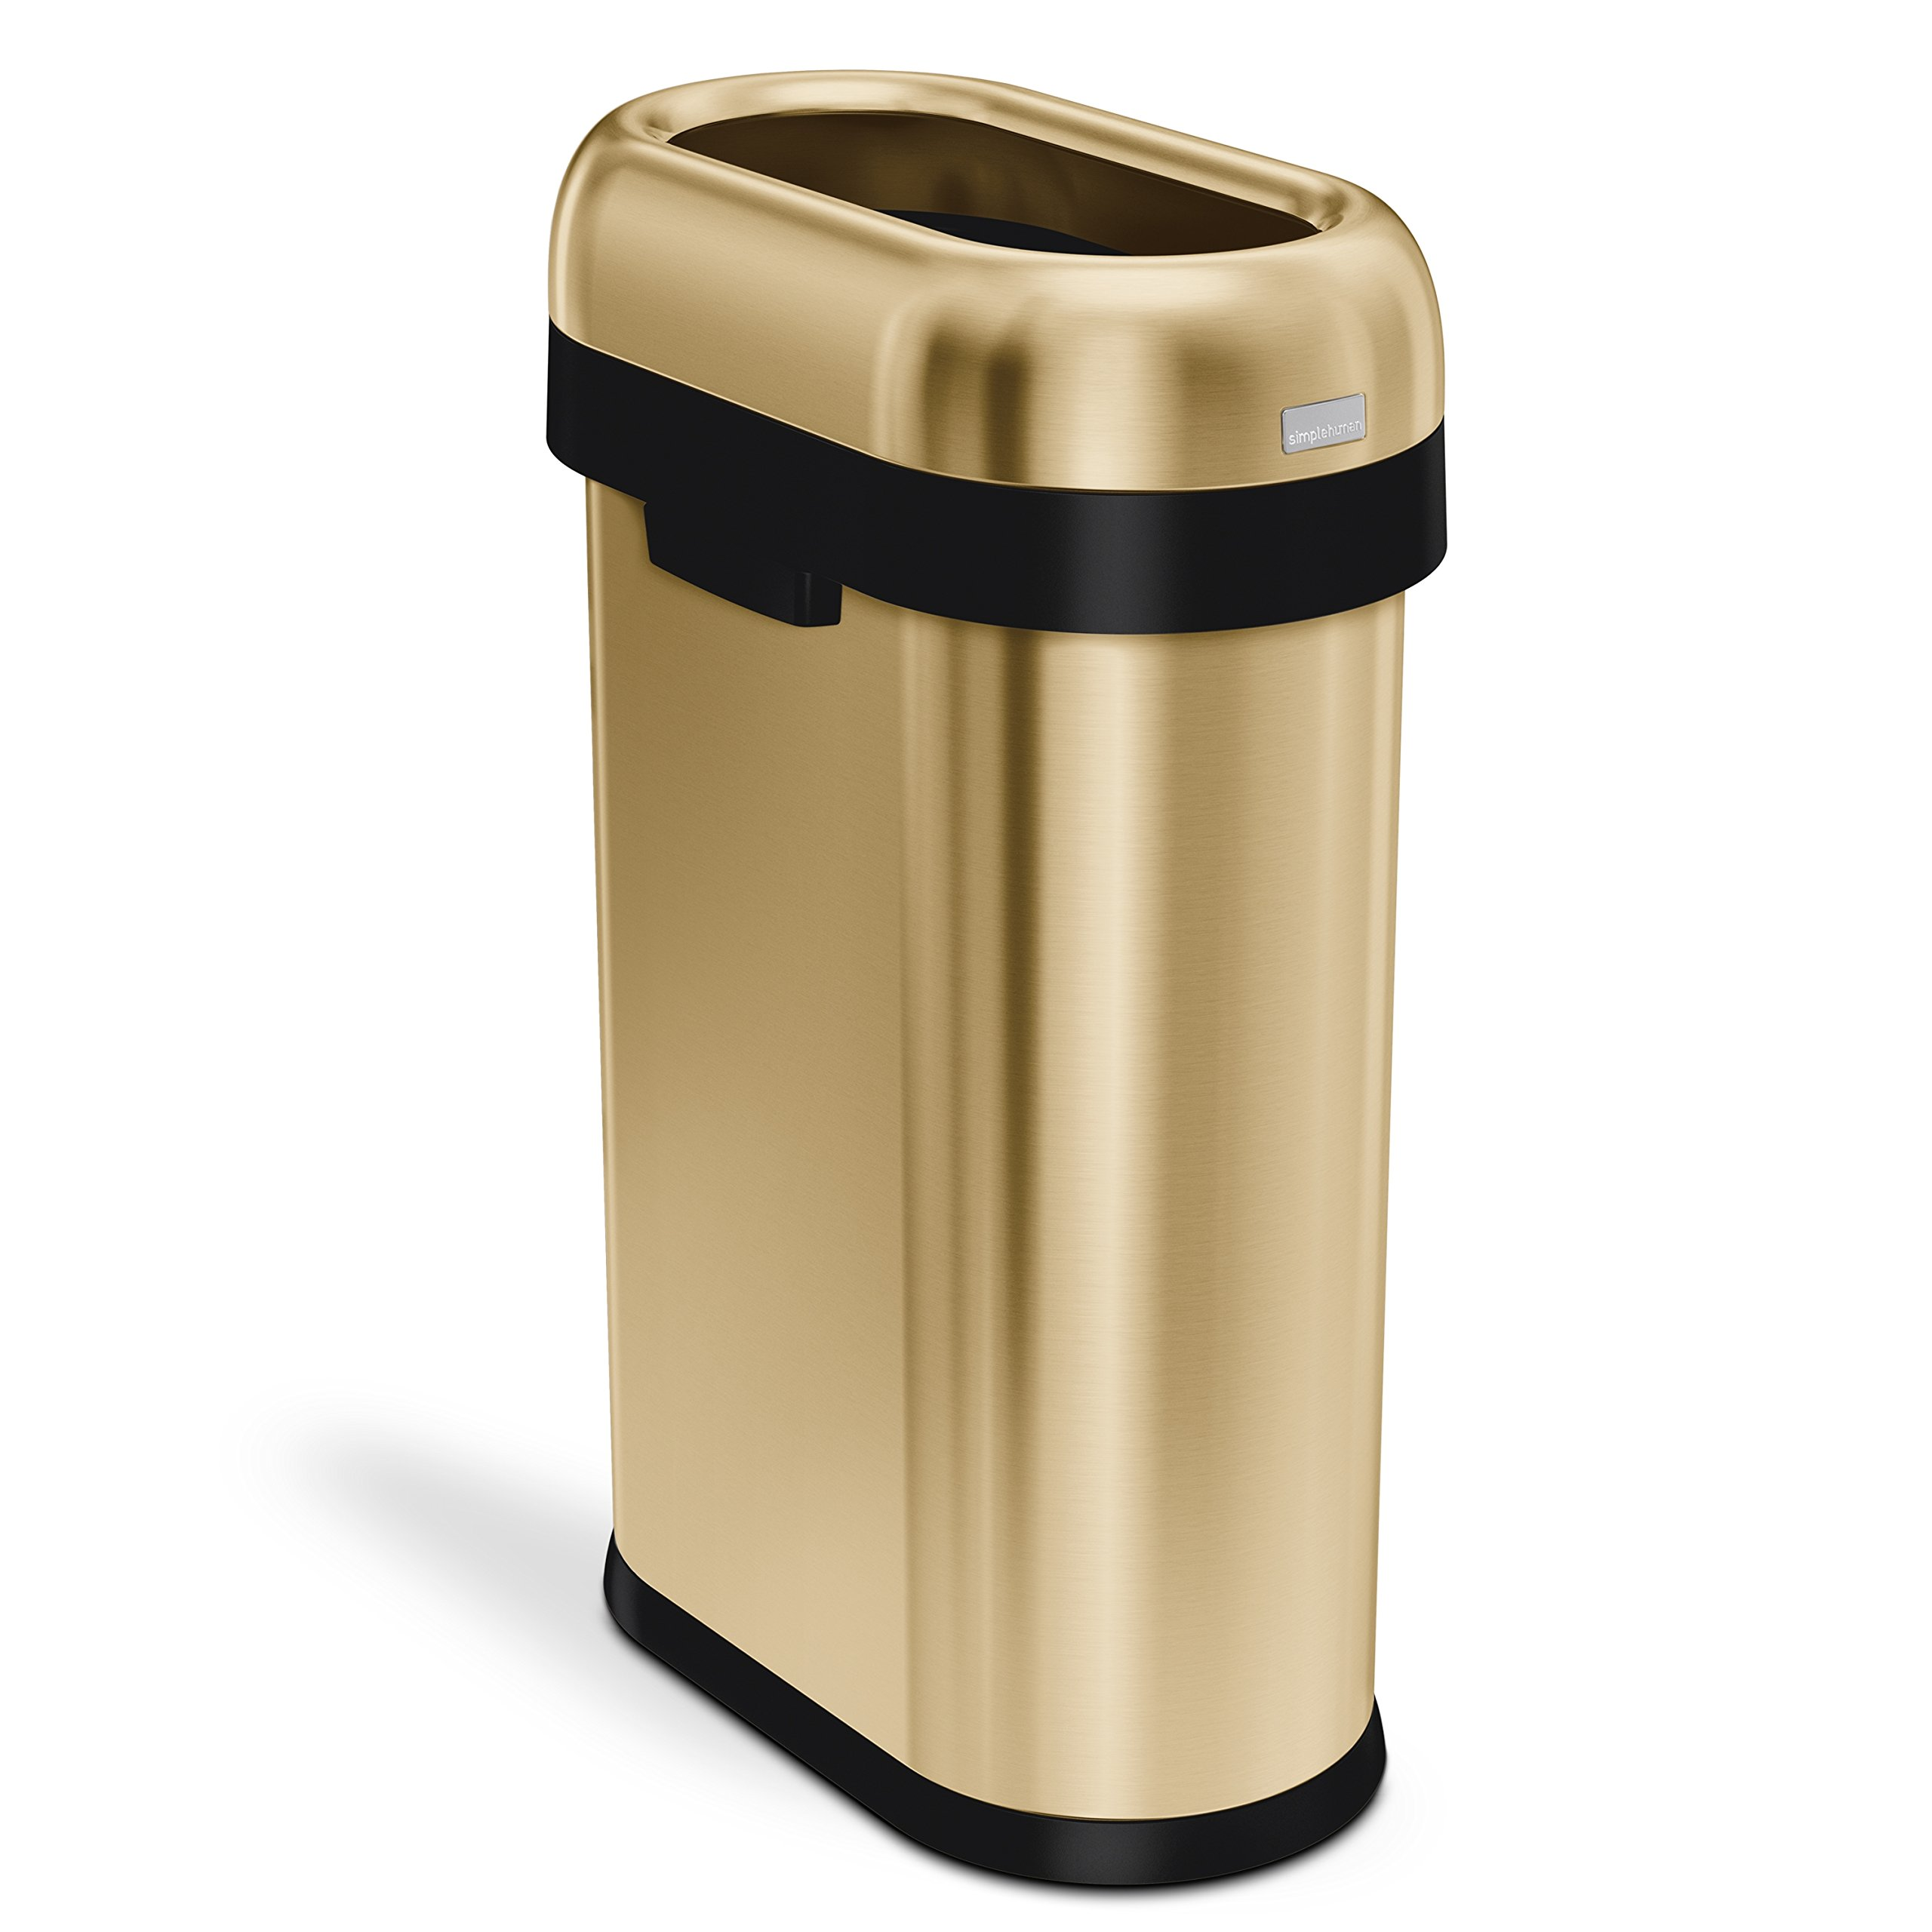 simplehuman 50 Liter / 13.2 Gallon Commercial Heavy-Gauge Stainless Steel Slim Open Trash Can, Brass Stainless Steel, ADA-Compliant